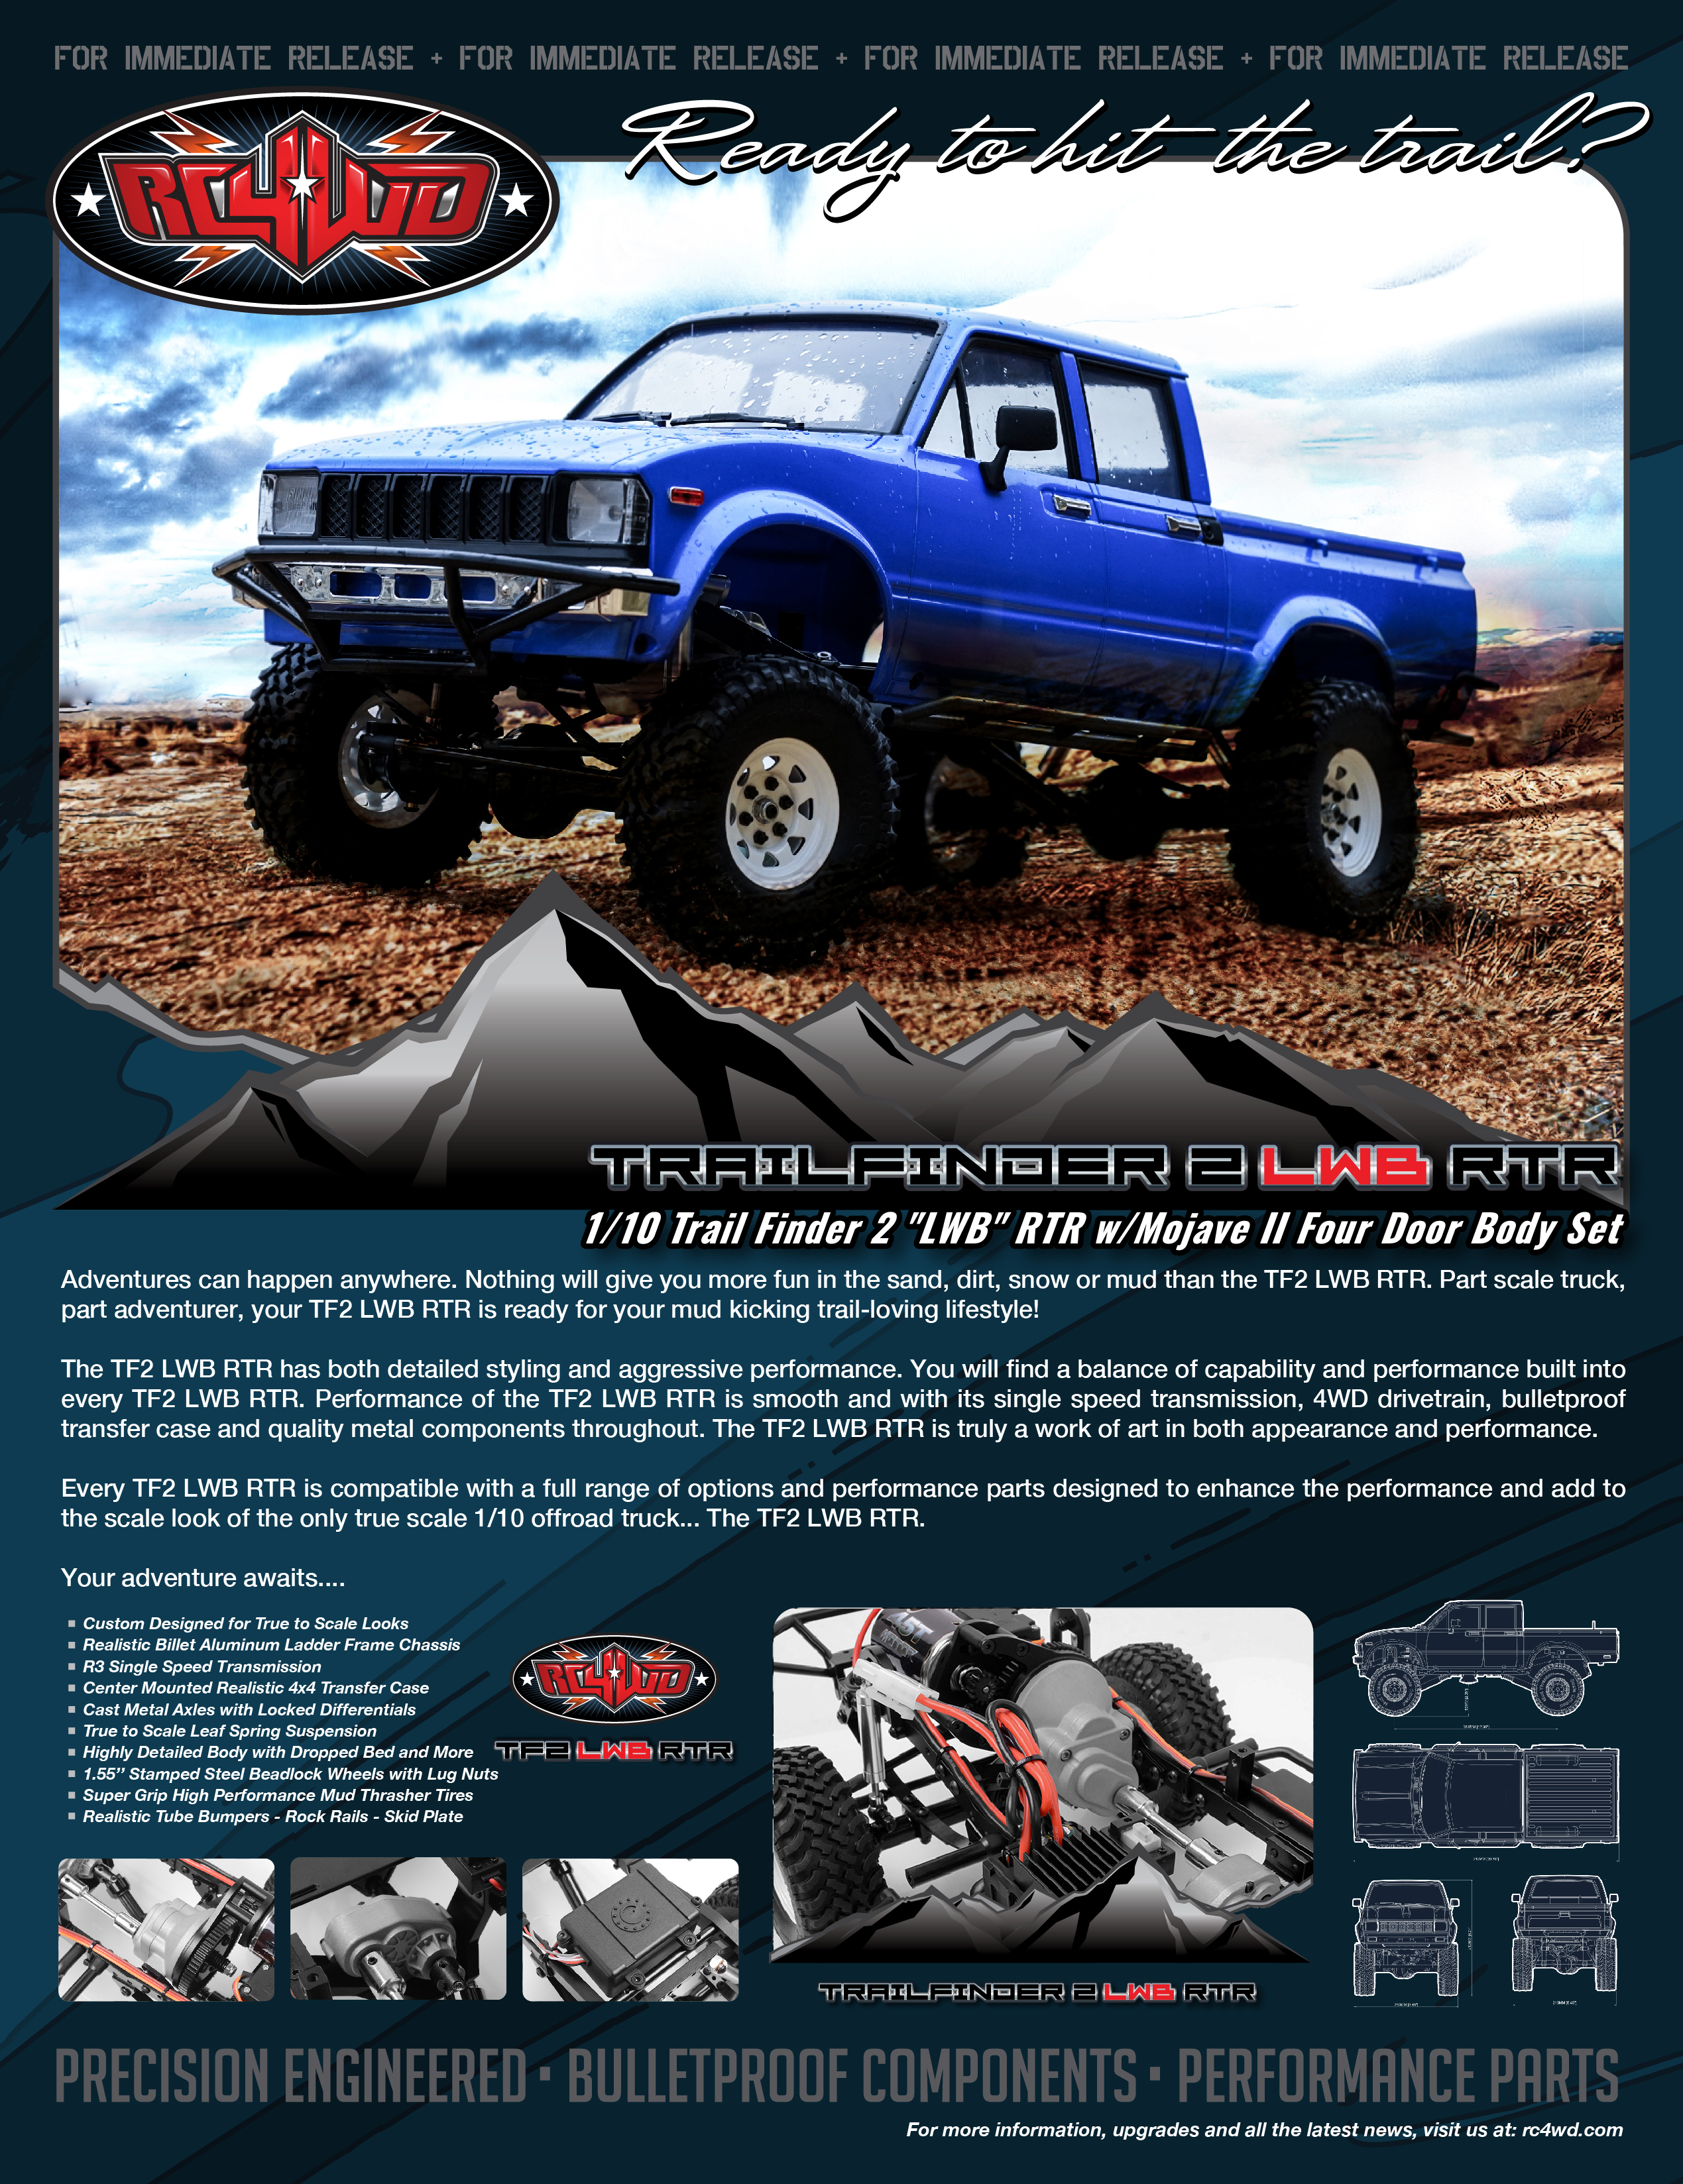 RC4WD Trail Finder 2